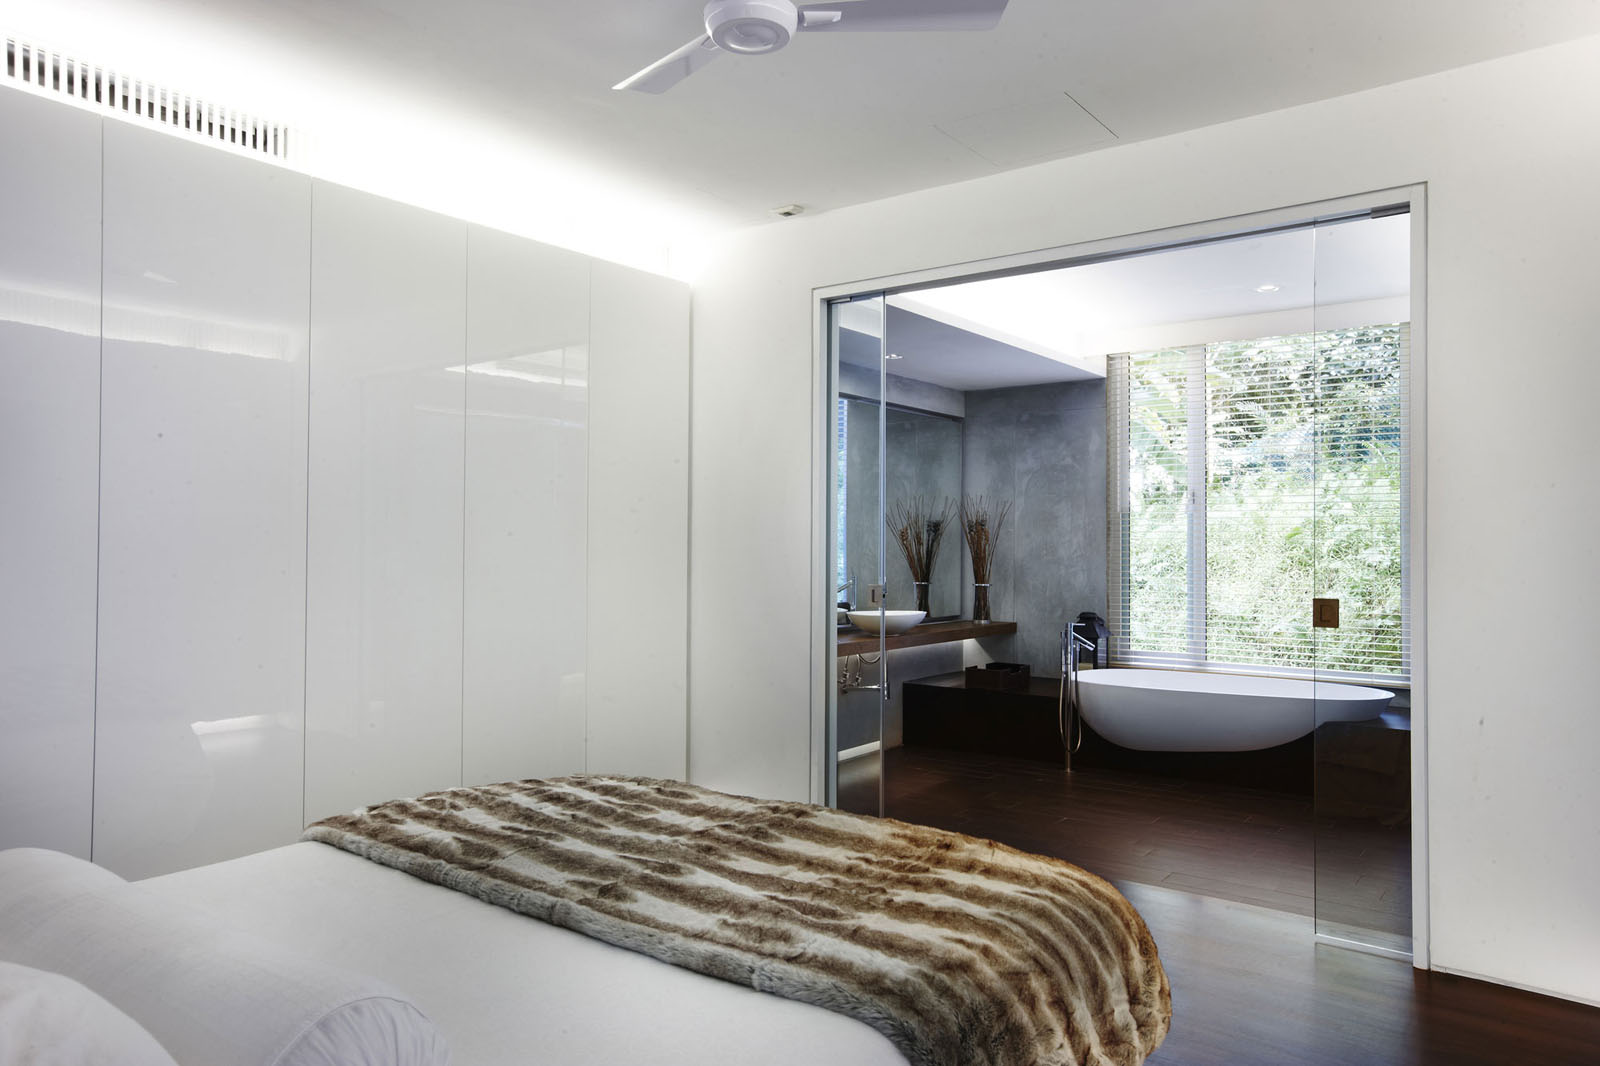 Pre War Shophouse In Singapore Transformed Into Luxury